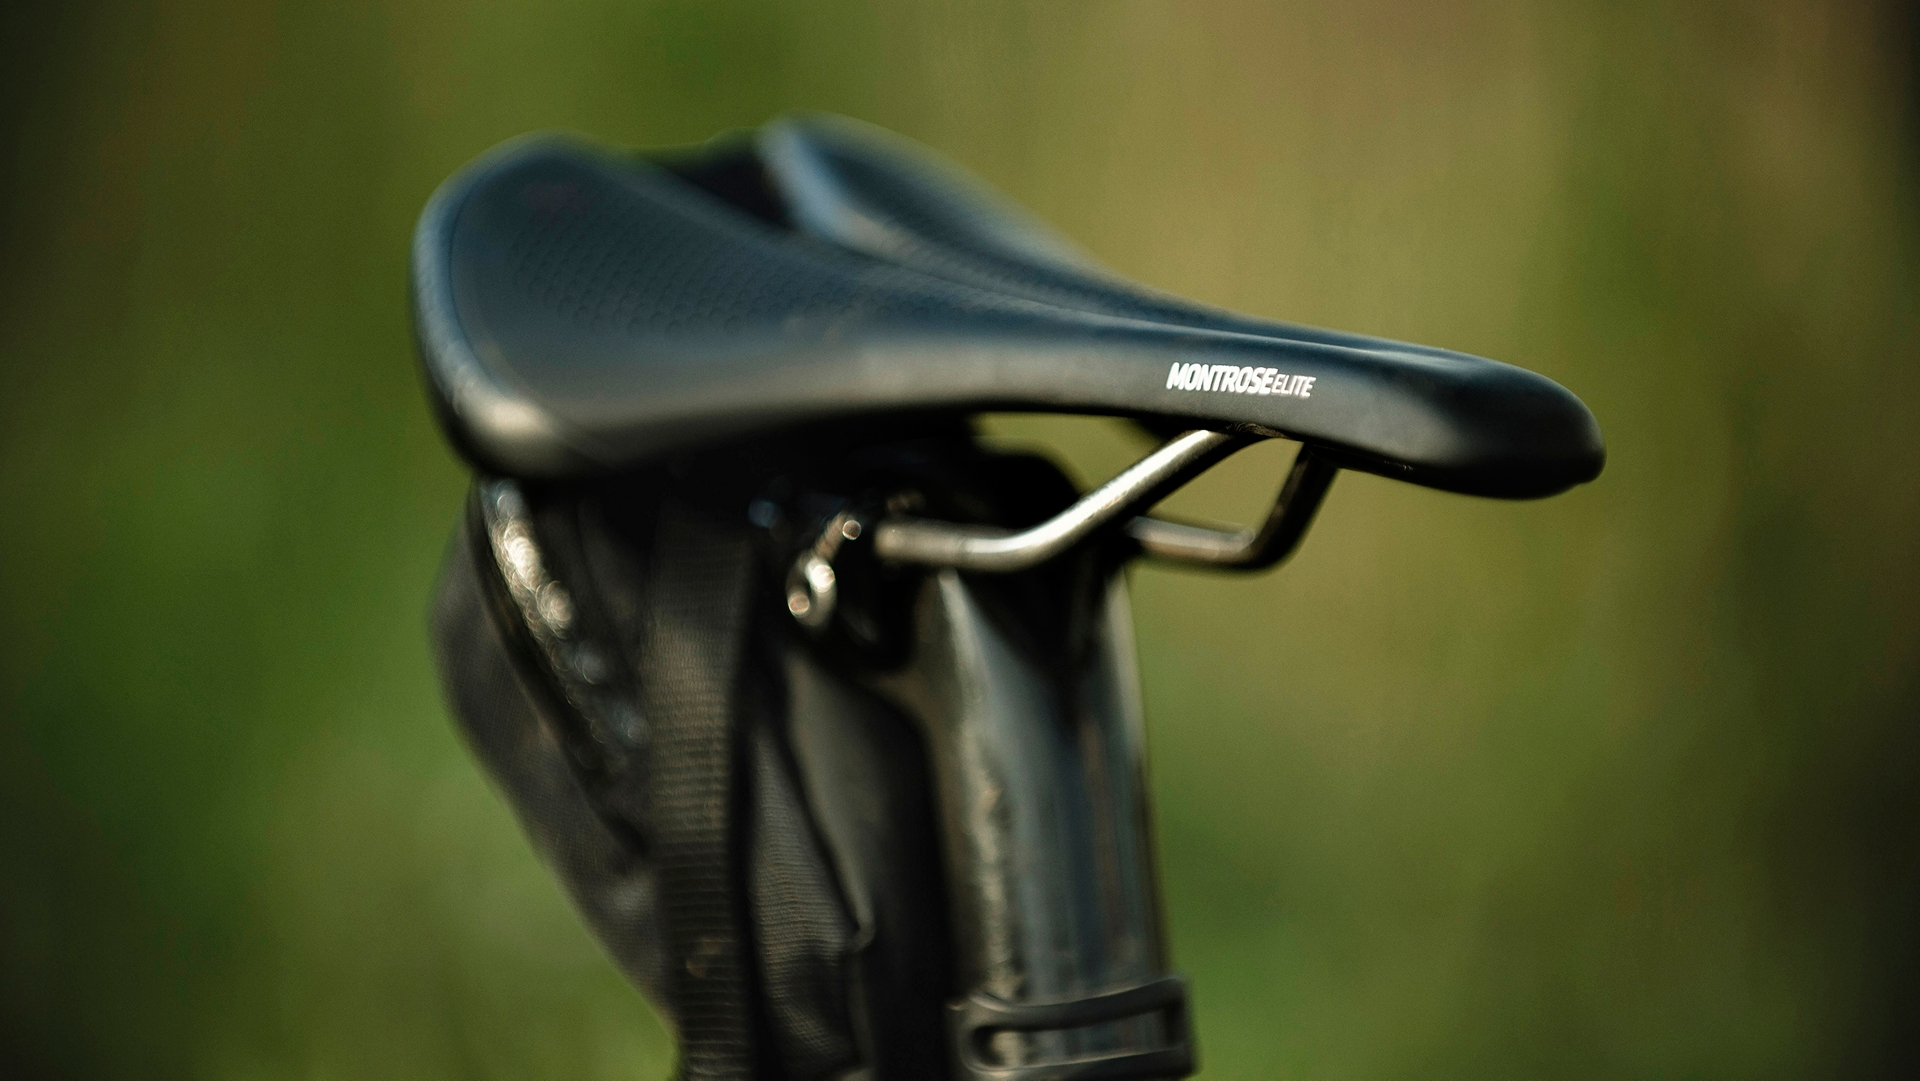 Trek Bontrager Saddle Bag